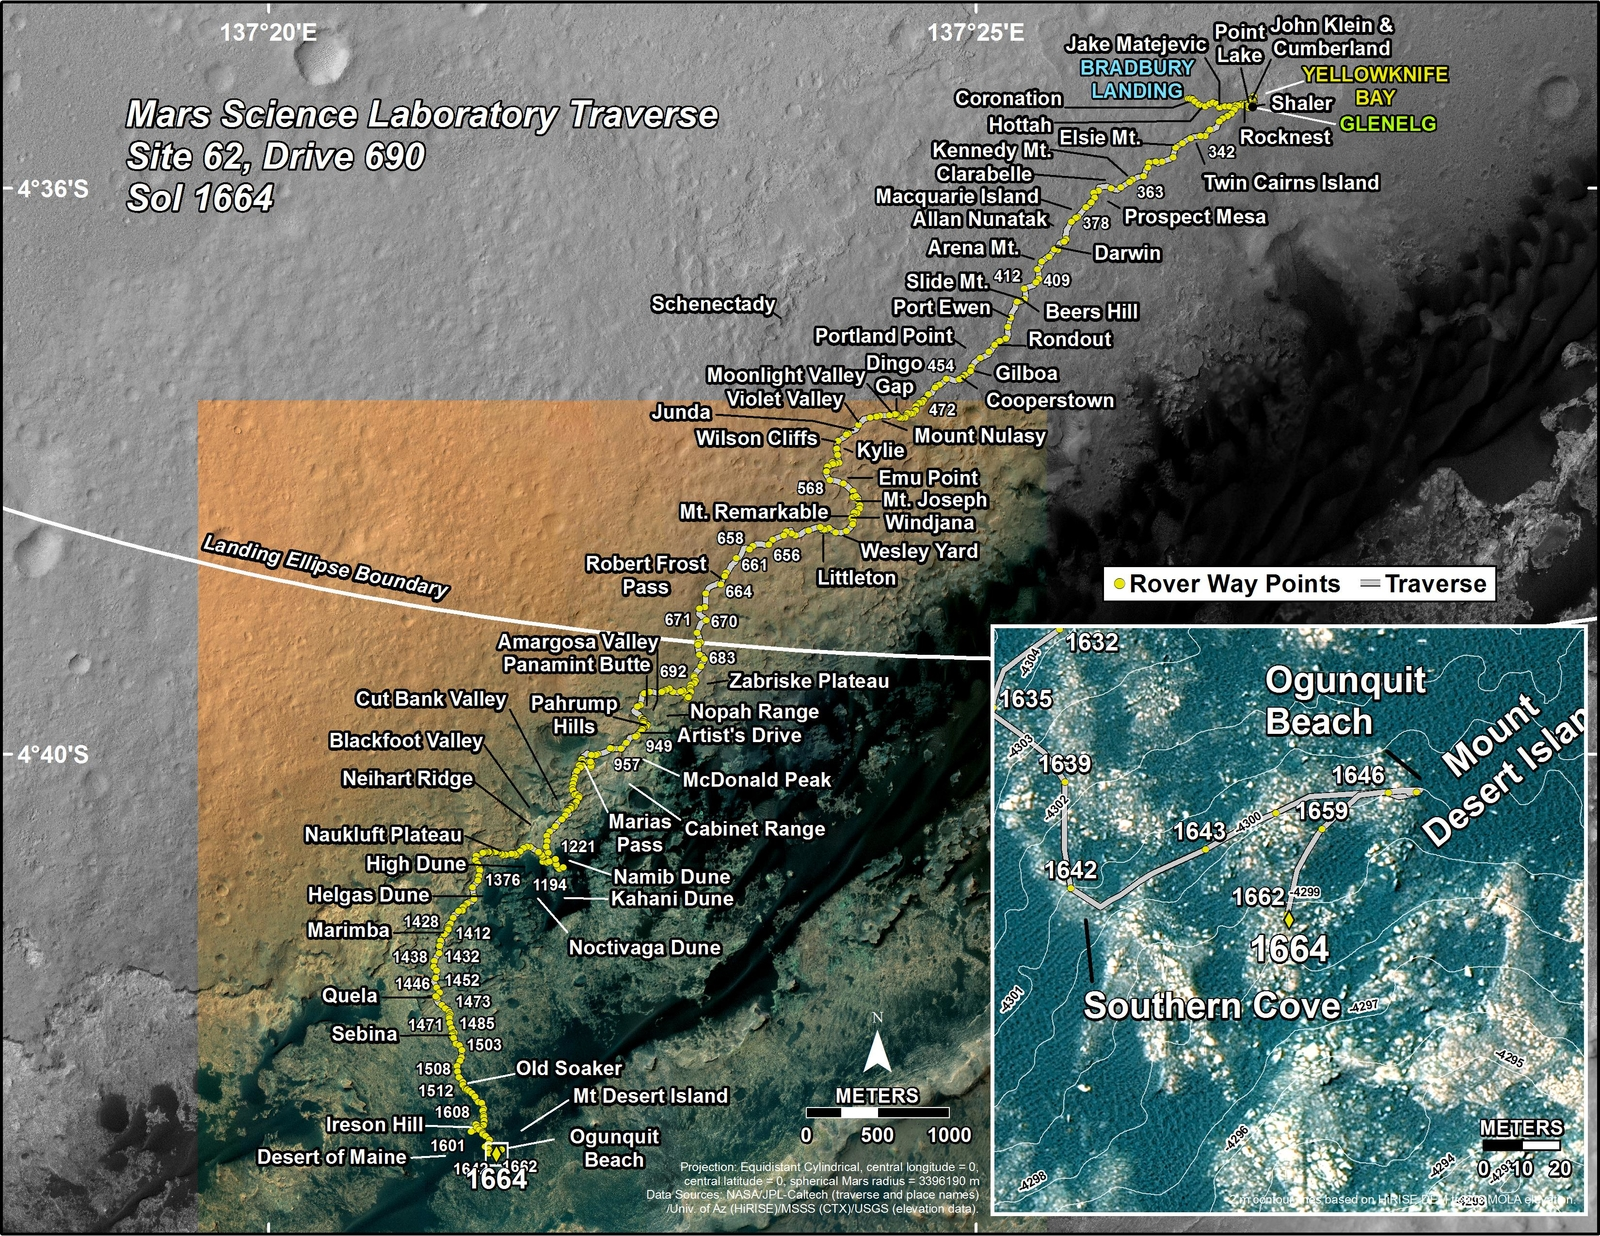 This map shows the route driven by NASA's Mars rover Curiosity through the 1664 Martian day, or sol, of the rover's mission on Mars (April 12, 2017).